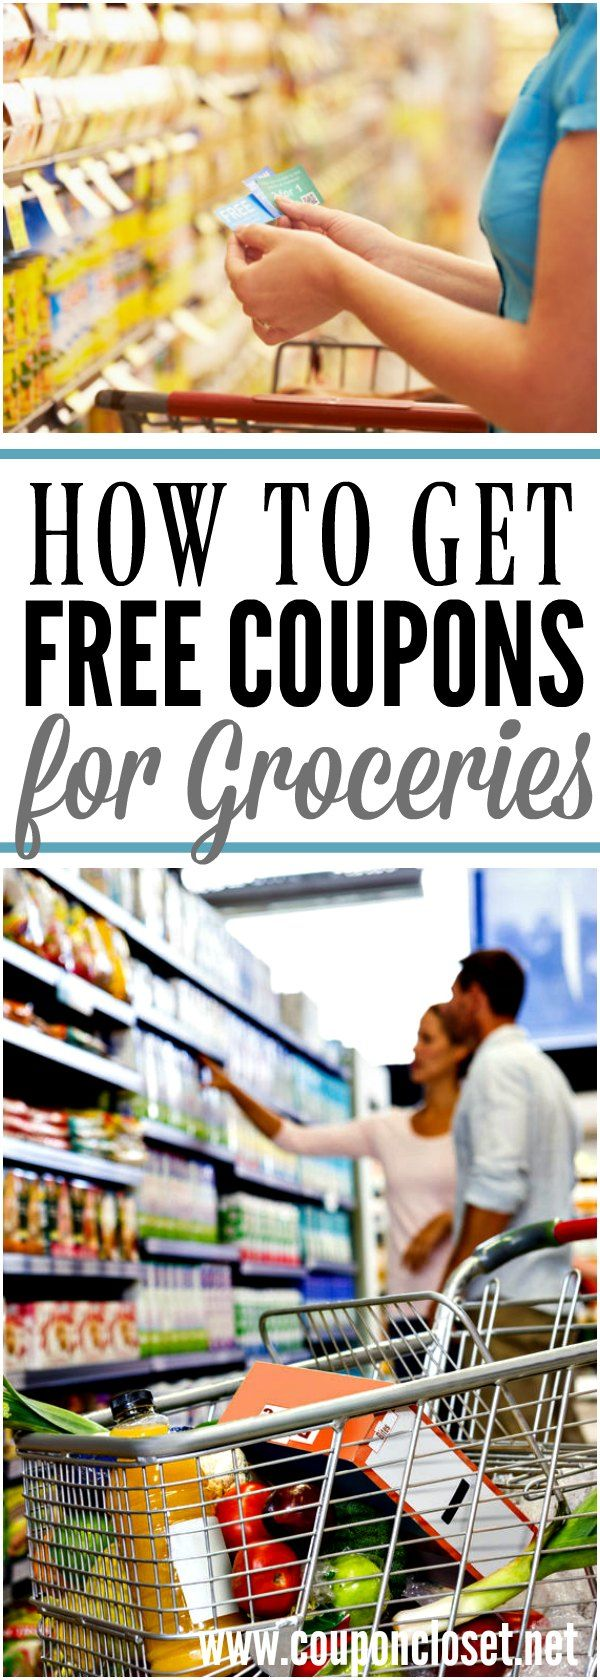 Coupon master clipping service - Free Coupons For Groceries Learn How To Get Free Coupons